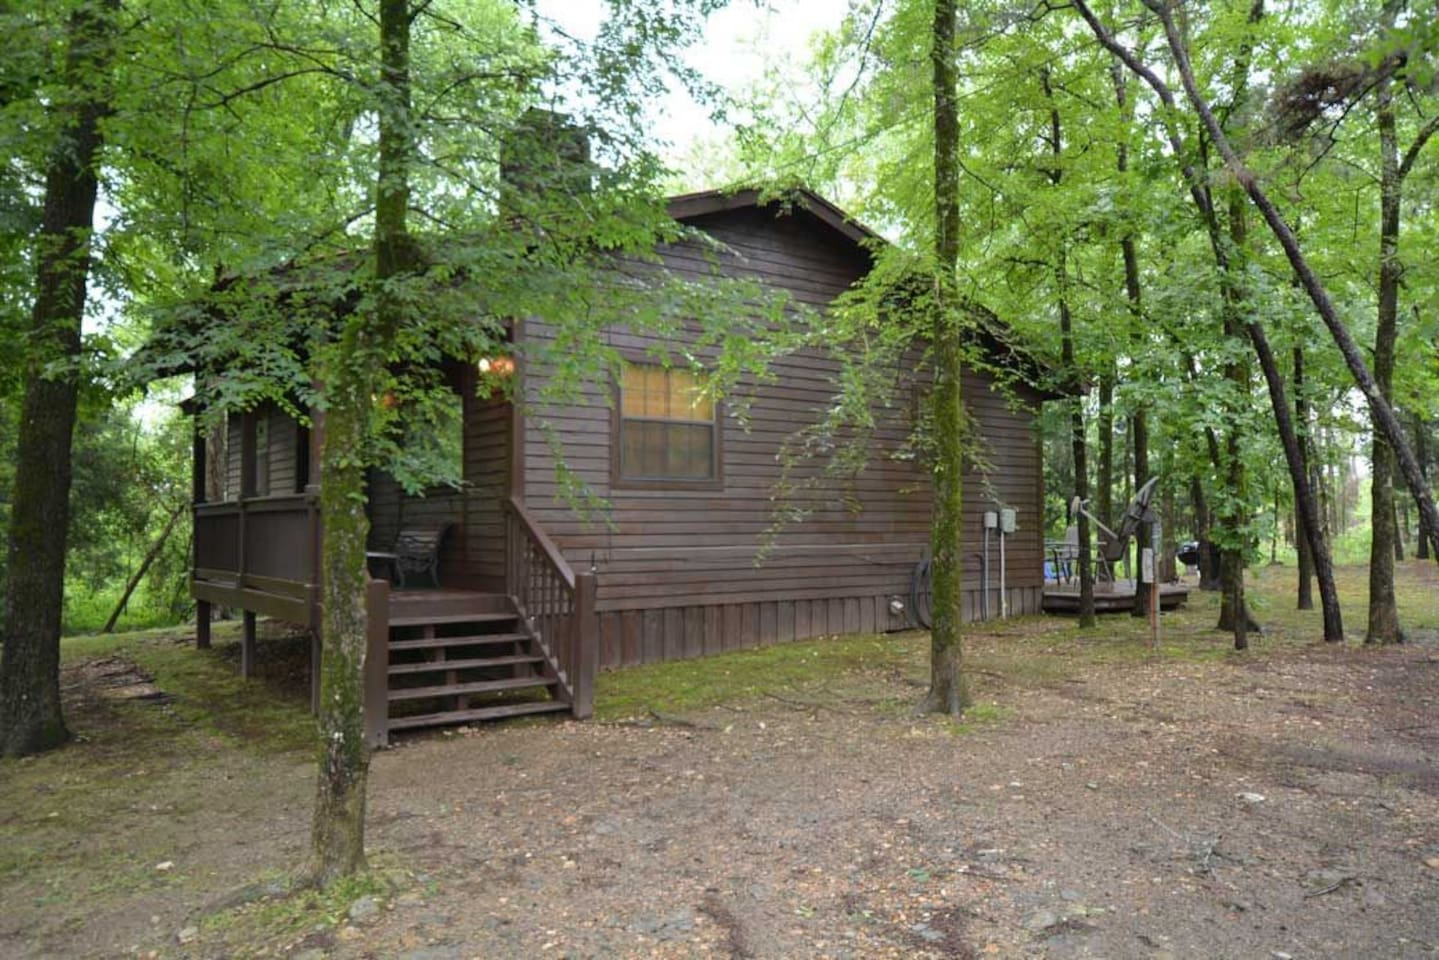 Building,House,Cottage,Cabin,Outdoors